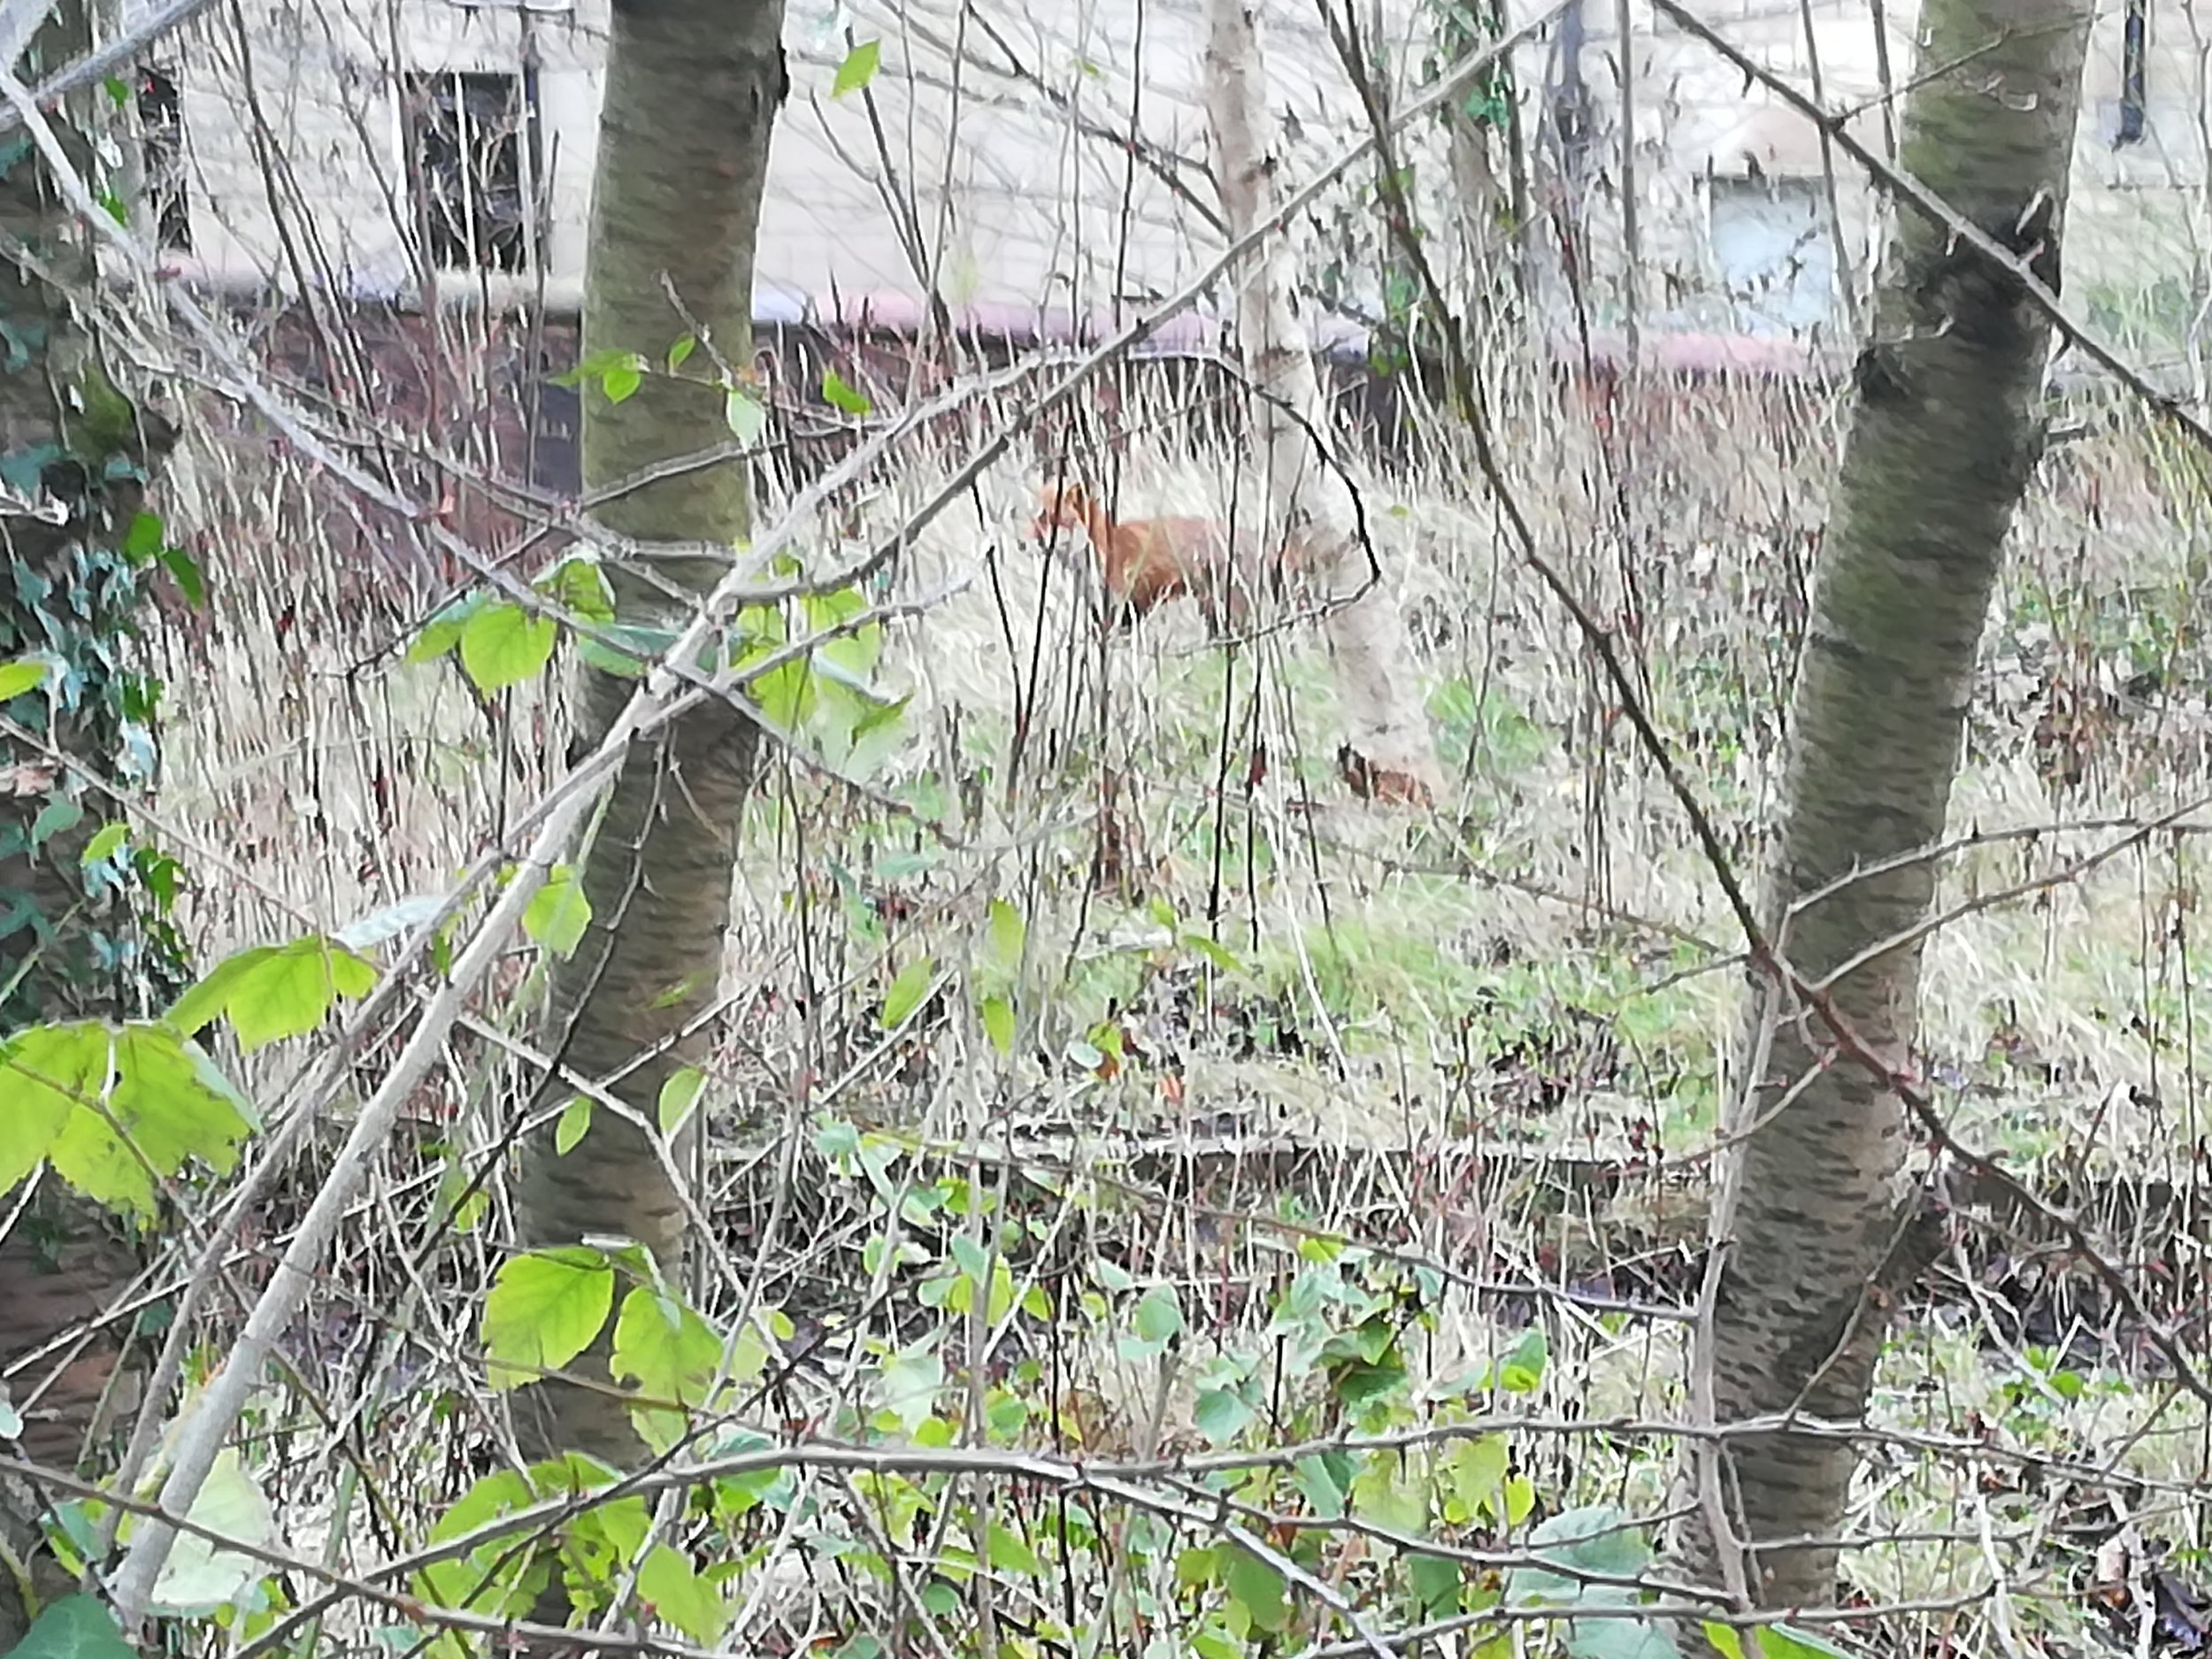 Fox through the trees in the wildlife garden